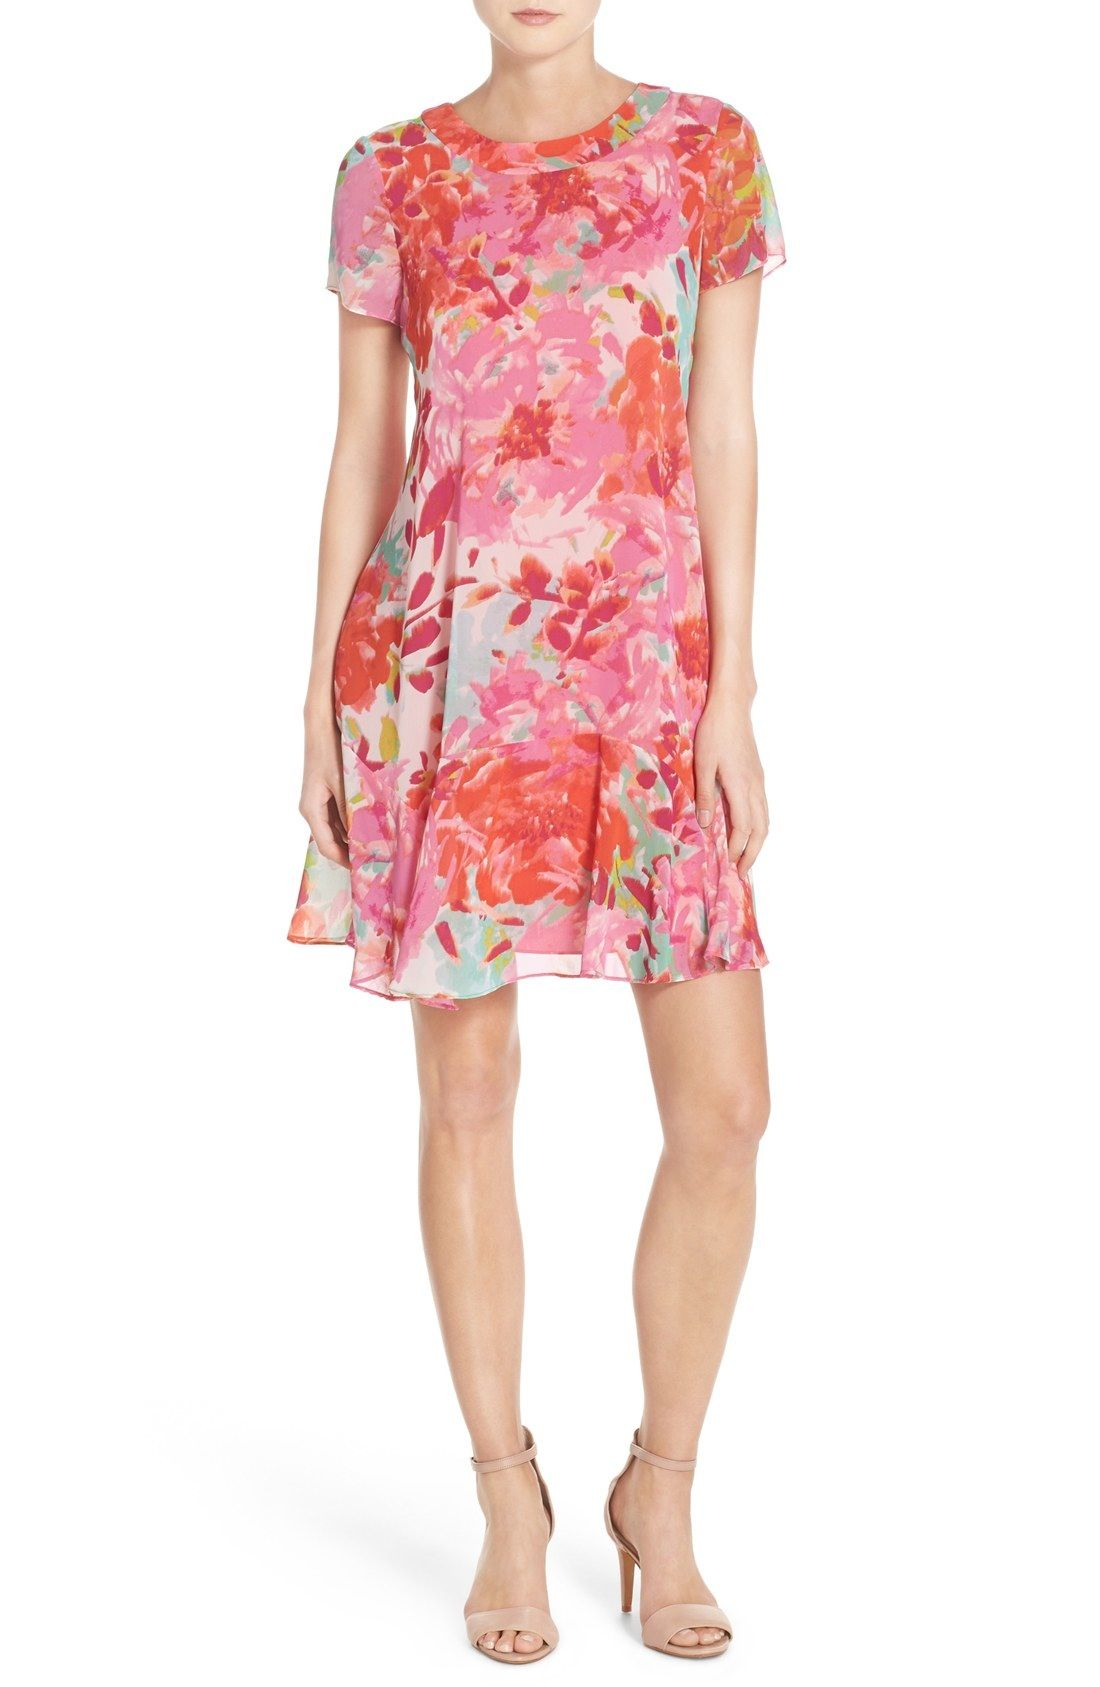 c089e0e759cf2 Eliza J Floral Chiffon Shift Dress available at #Nordstrom | Dresses ...